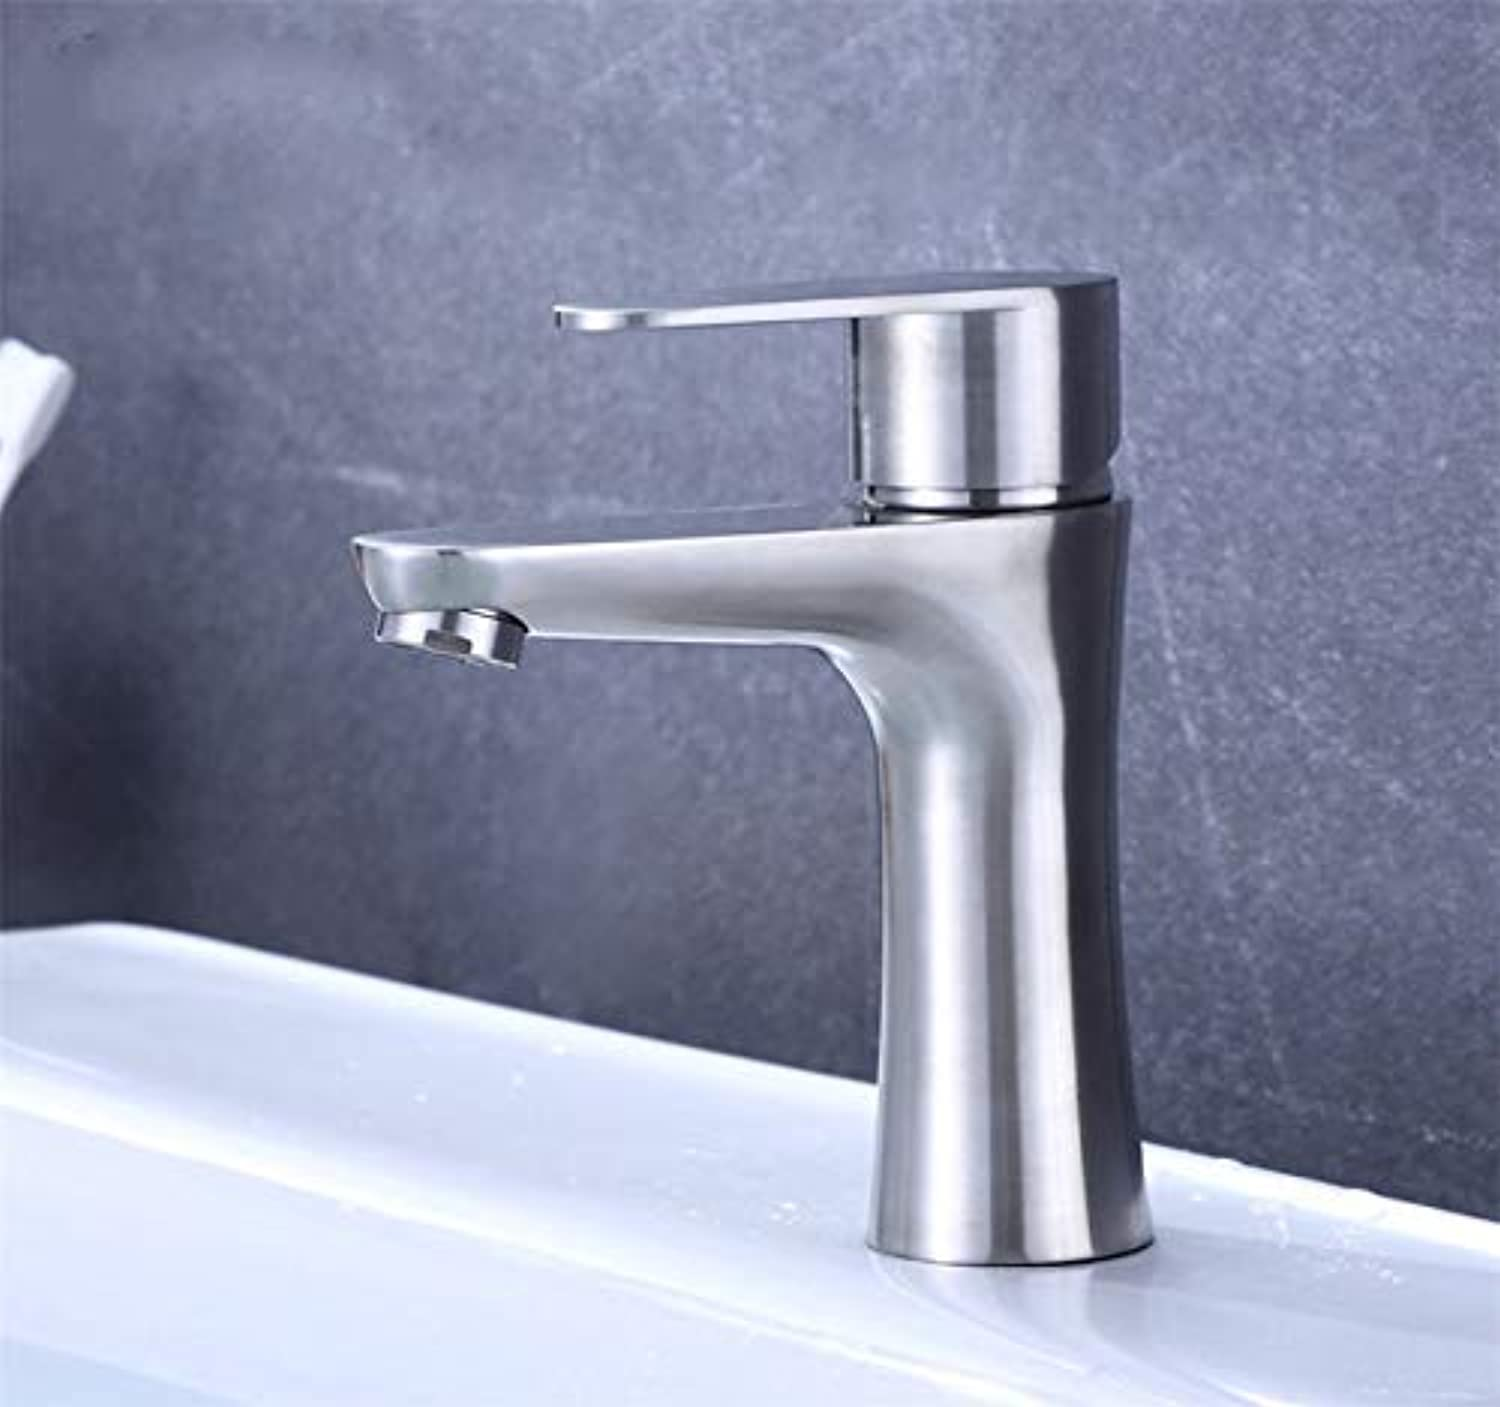 Oudan Taps 304?Stainless Steel Faucet Hot And Cold Washbasin Mixer (color   -, Size   -)